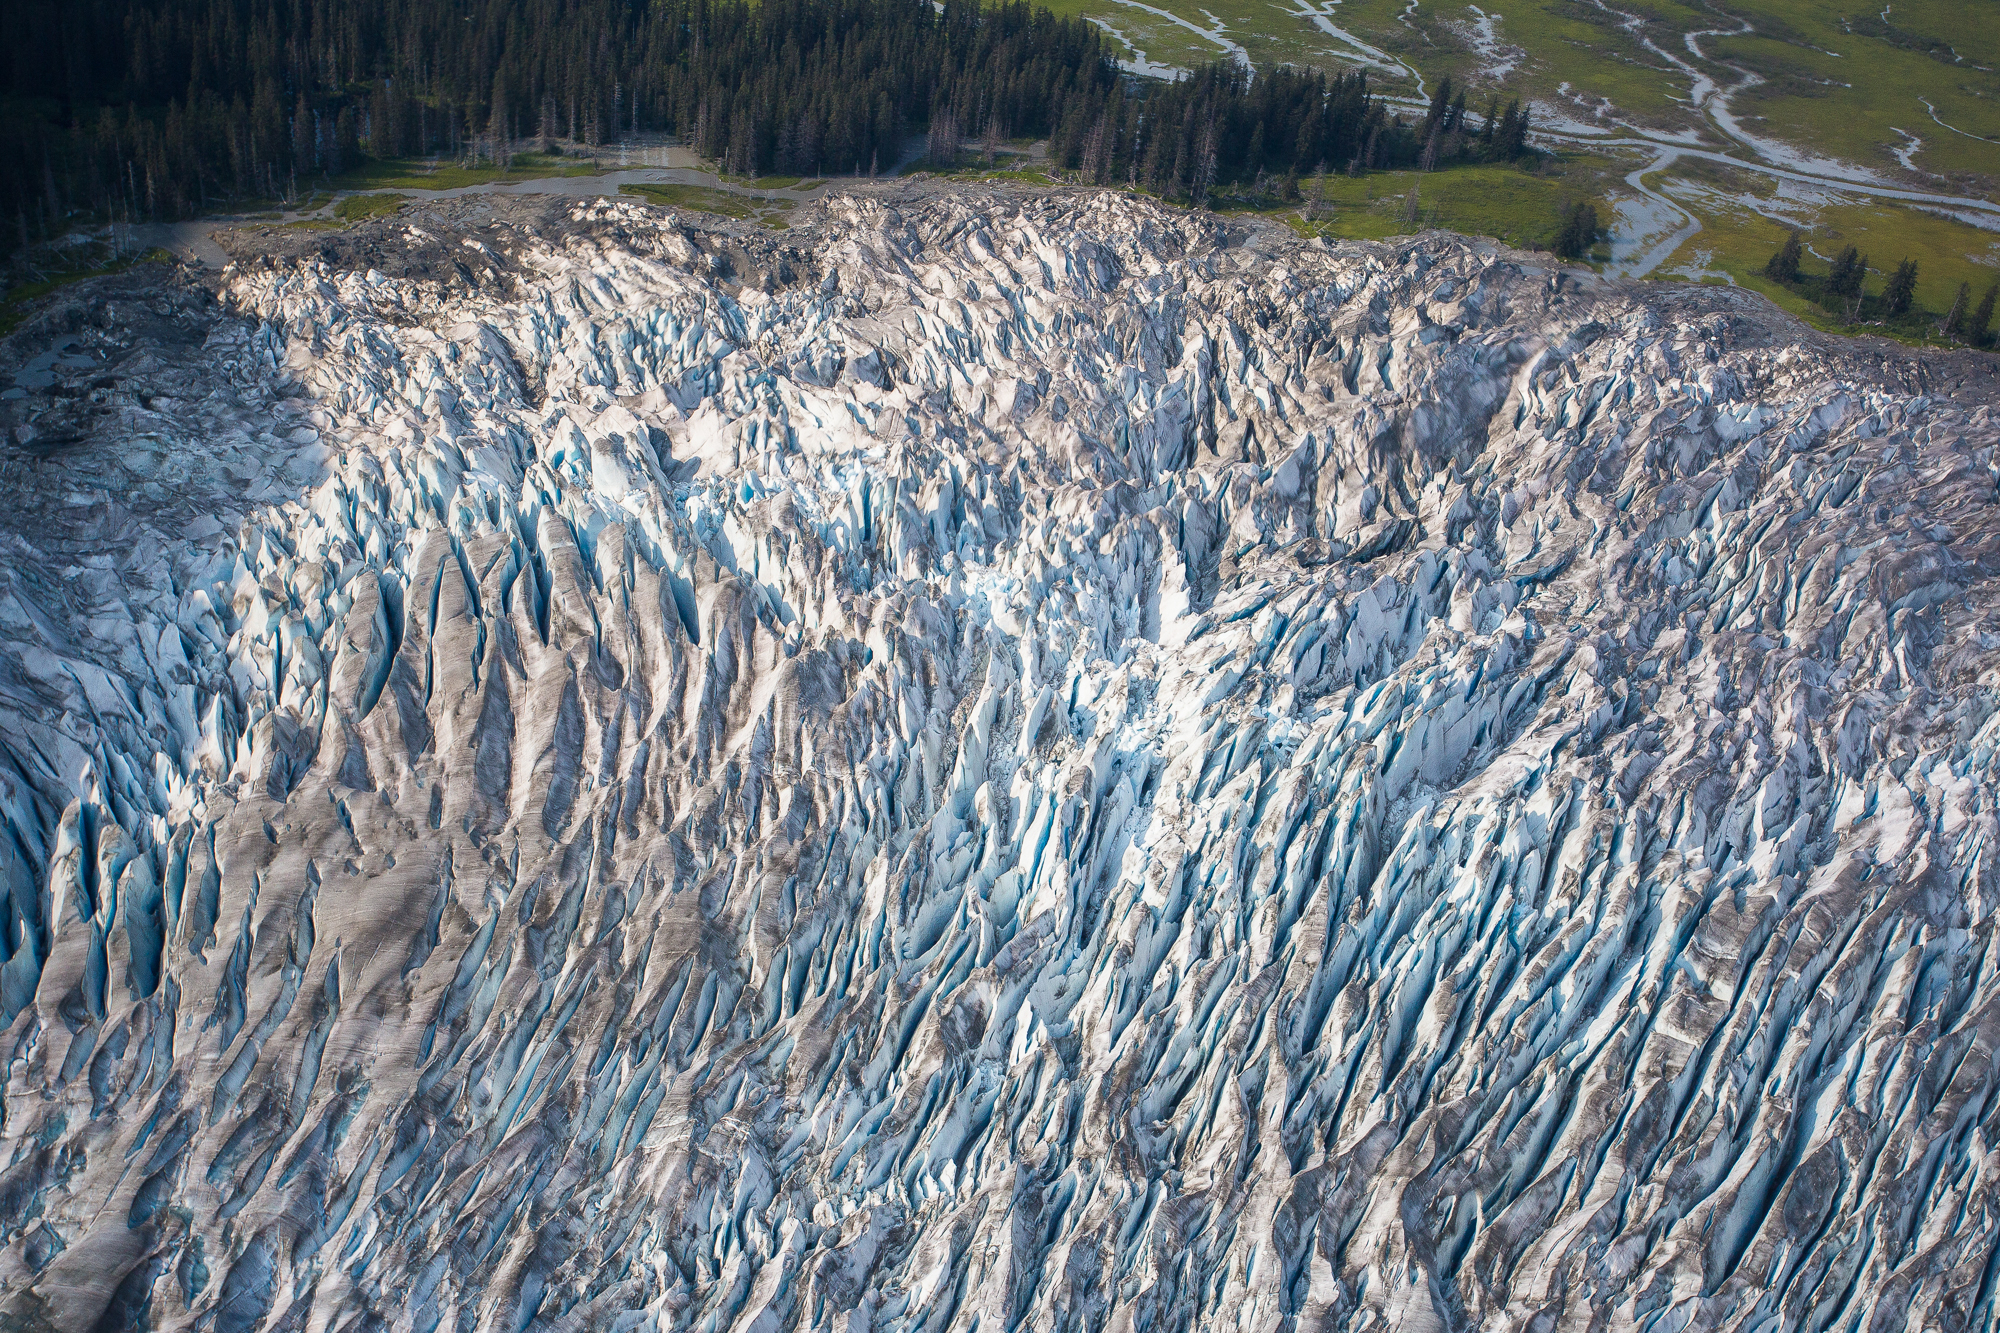 The Taku continues to advance, unlike many other glaciers in the region, which have been negatively impacted by climate change. Of the 20 glaciers in the Juneau Icefield, only the Taku is still advancing.